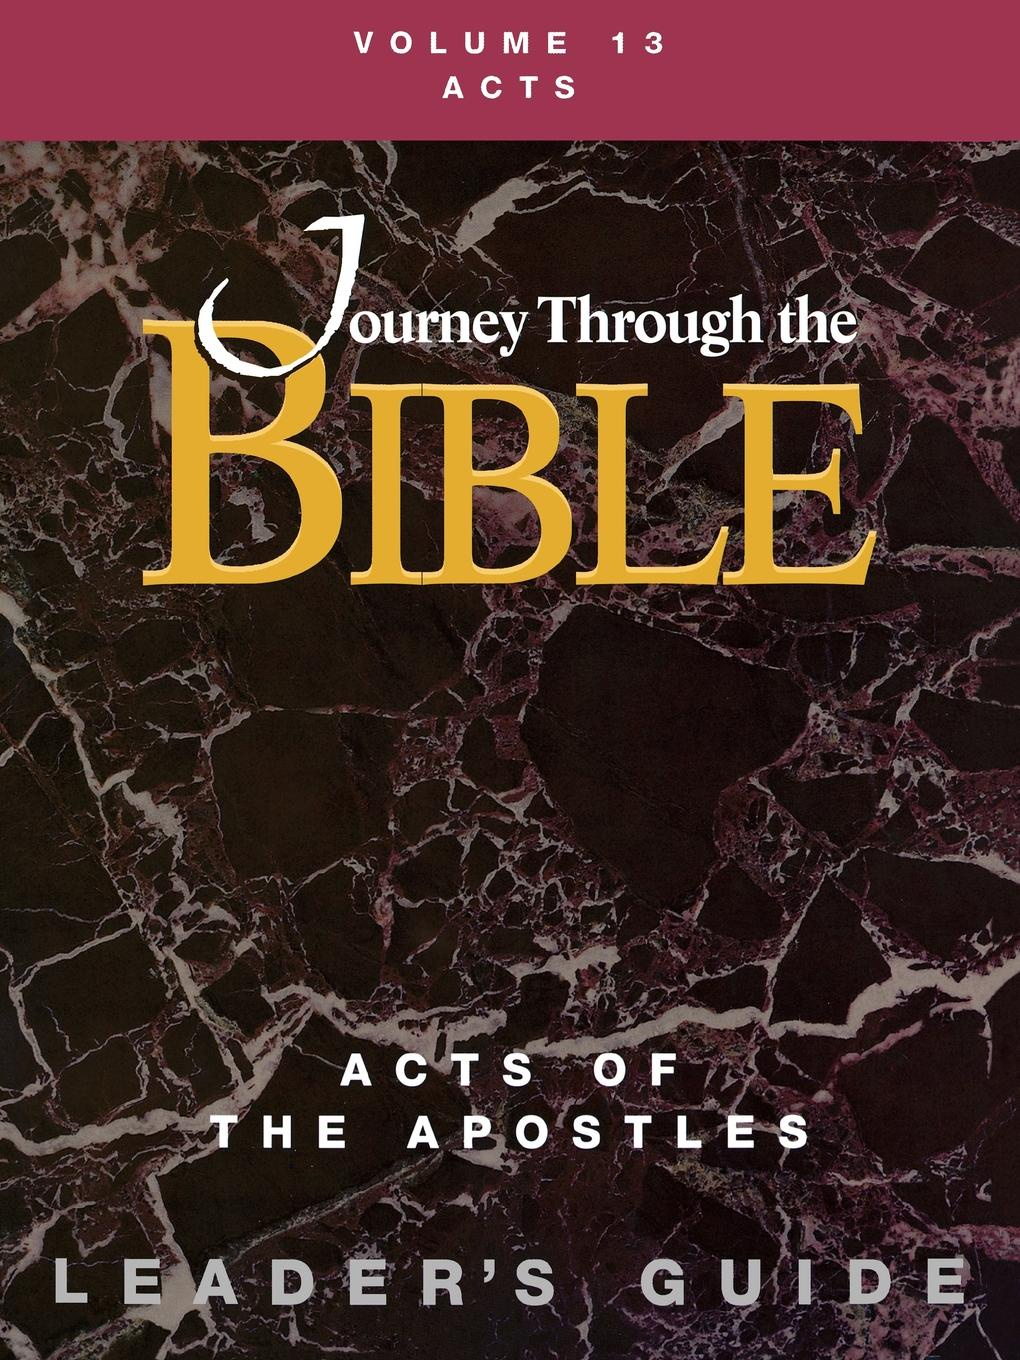 Justo Gonzalez Journey Through the Bible Volume 13, Acts of Apostles Leaders Guide